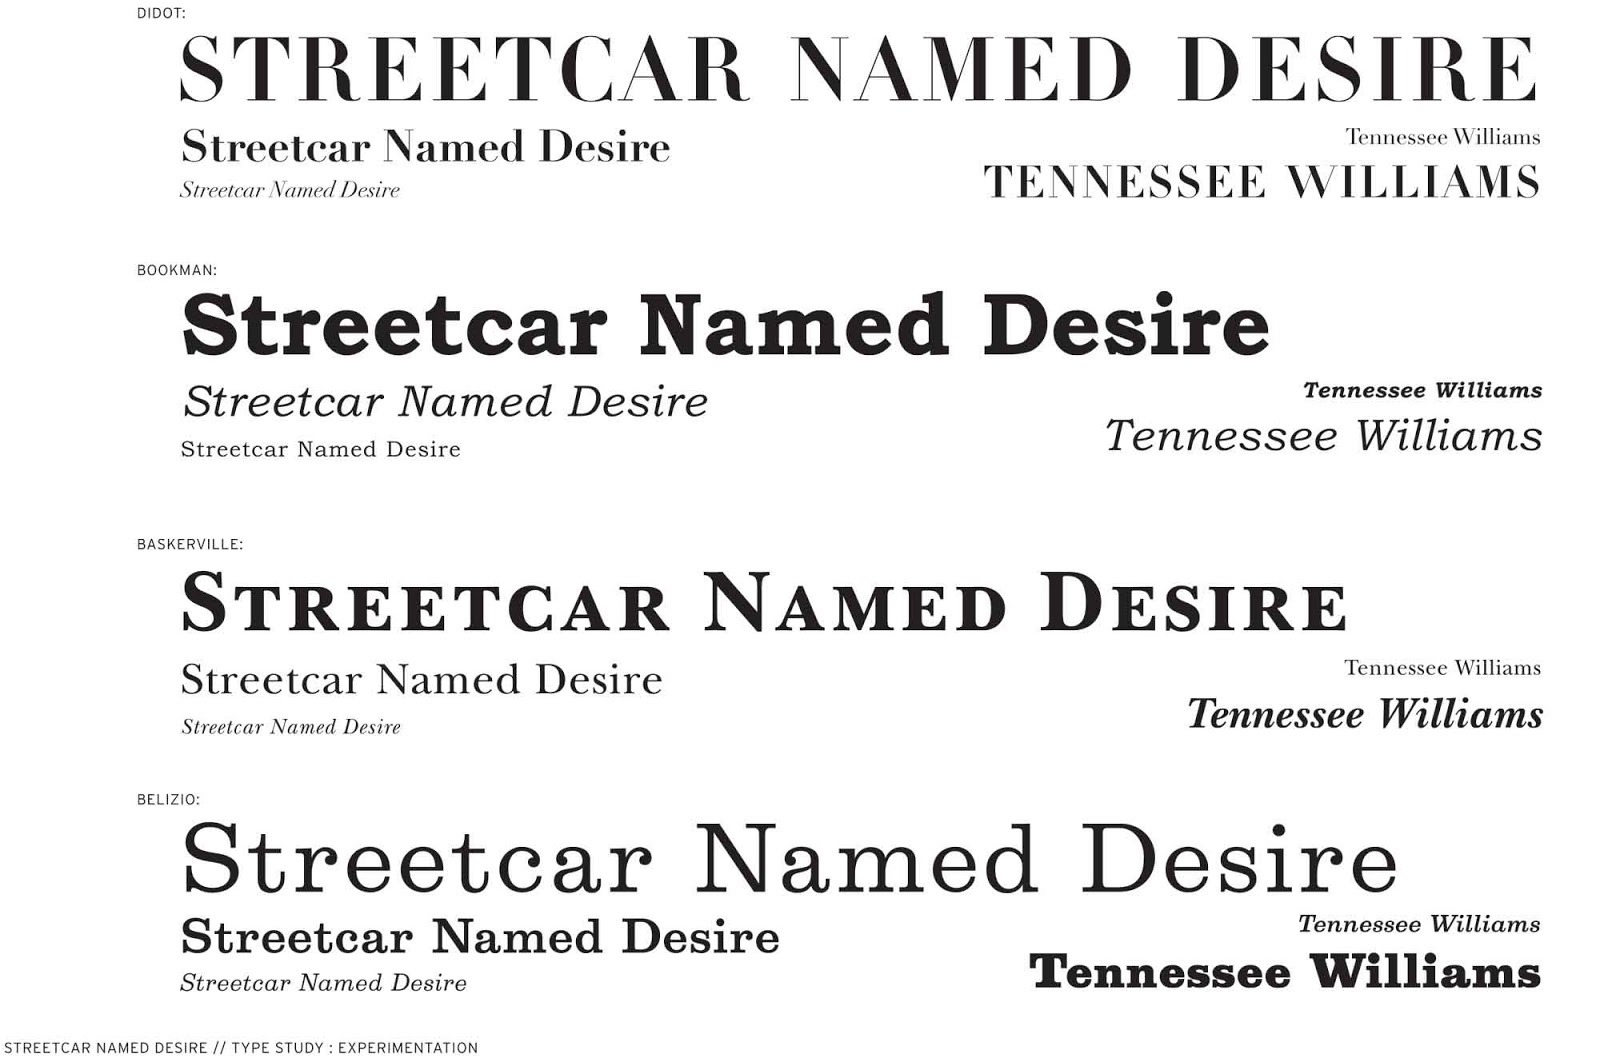 a streetcar named desire research paper Class conflict is represented throughout the play, a streetcar named desire in various ways through characters, symbols, ideas and language more literature research papers essays: symbolism in a streetcar named desire by tennessee williams as he.